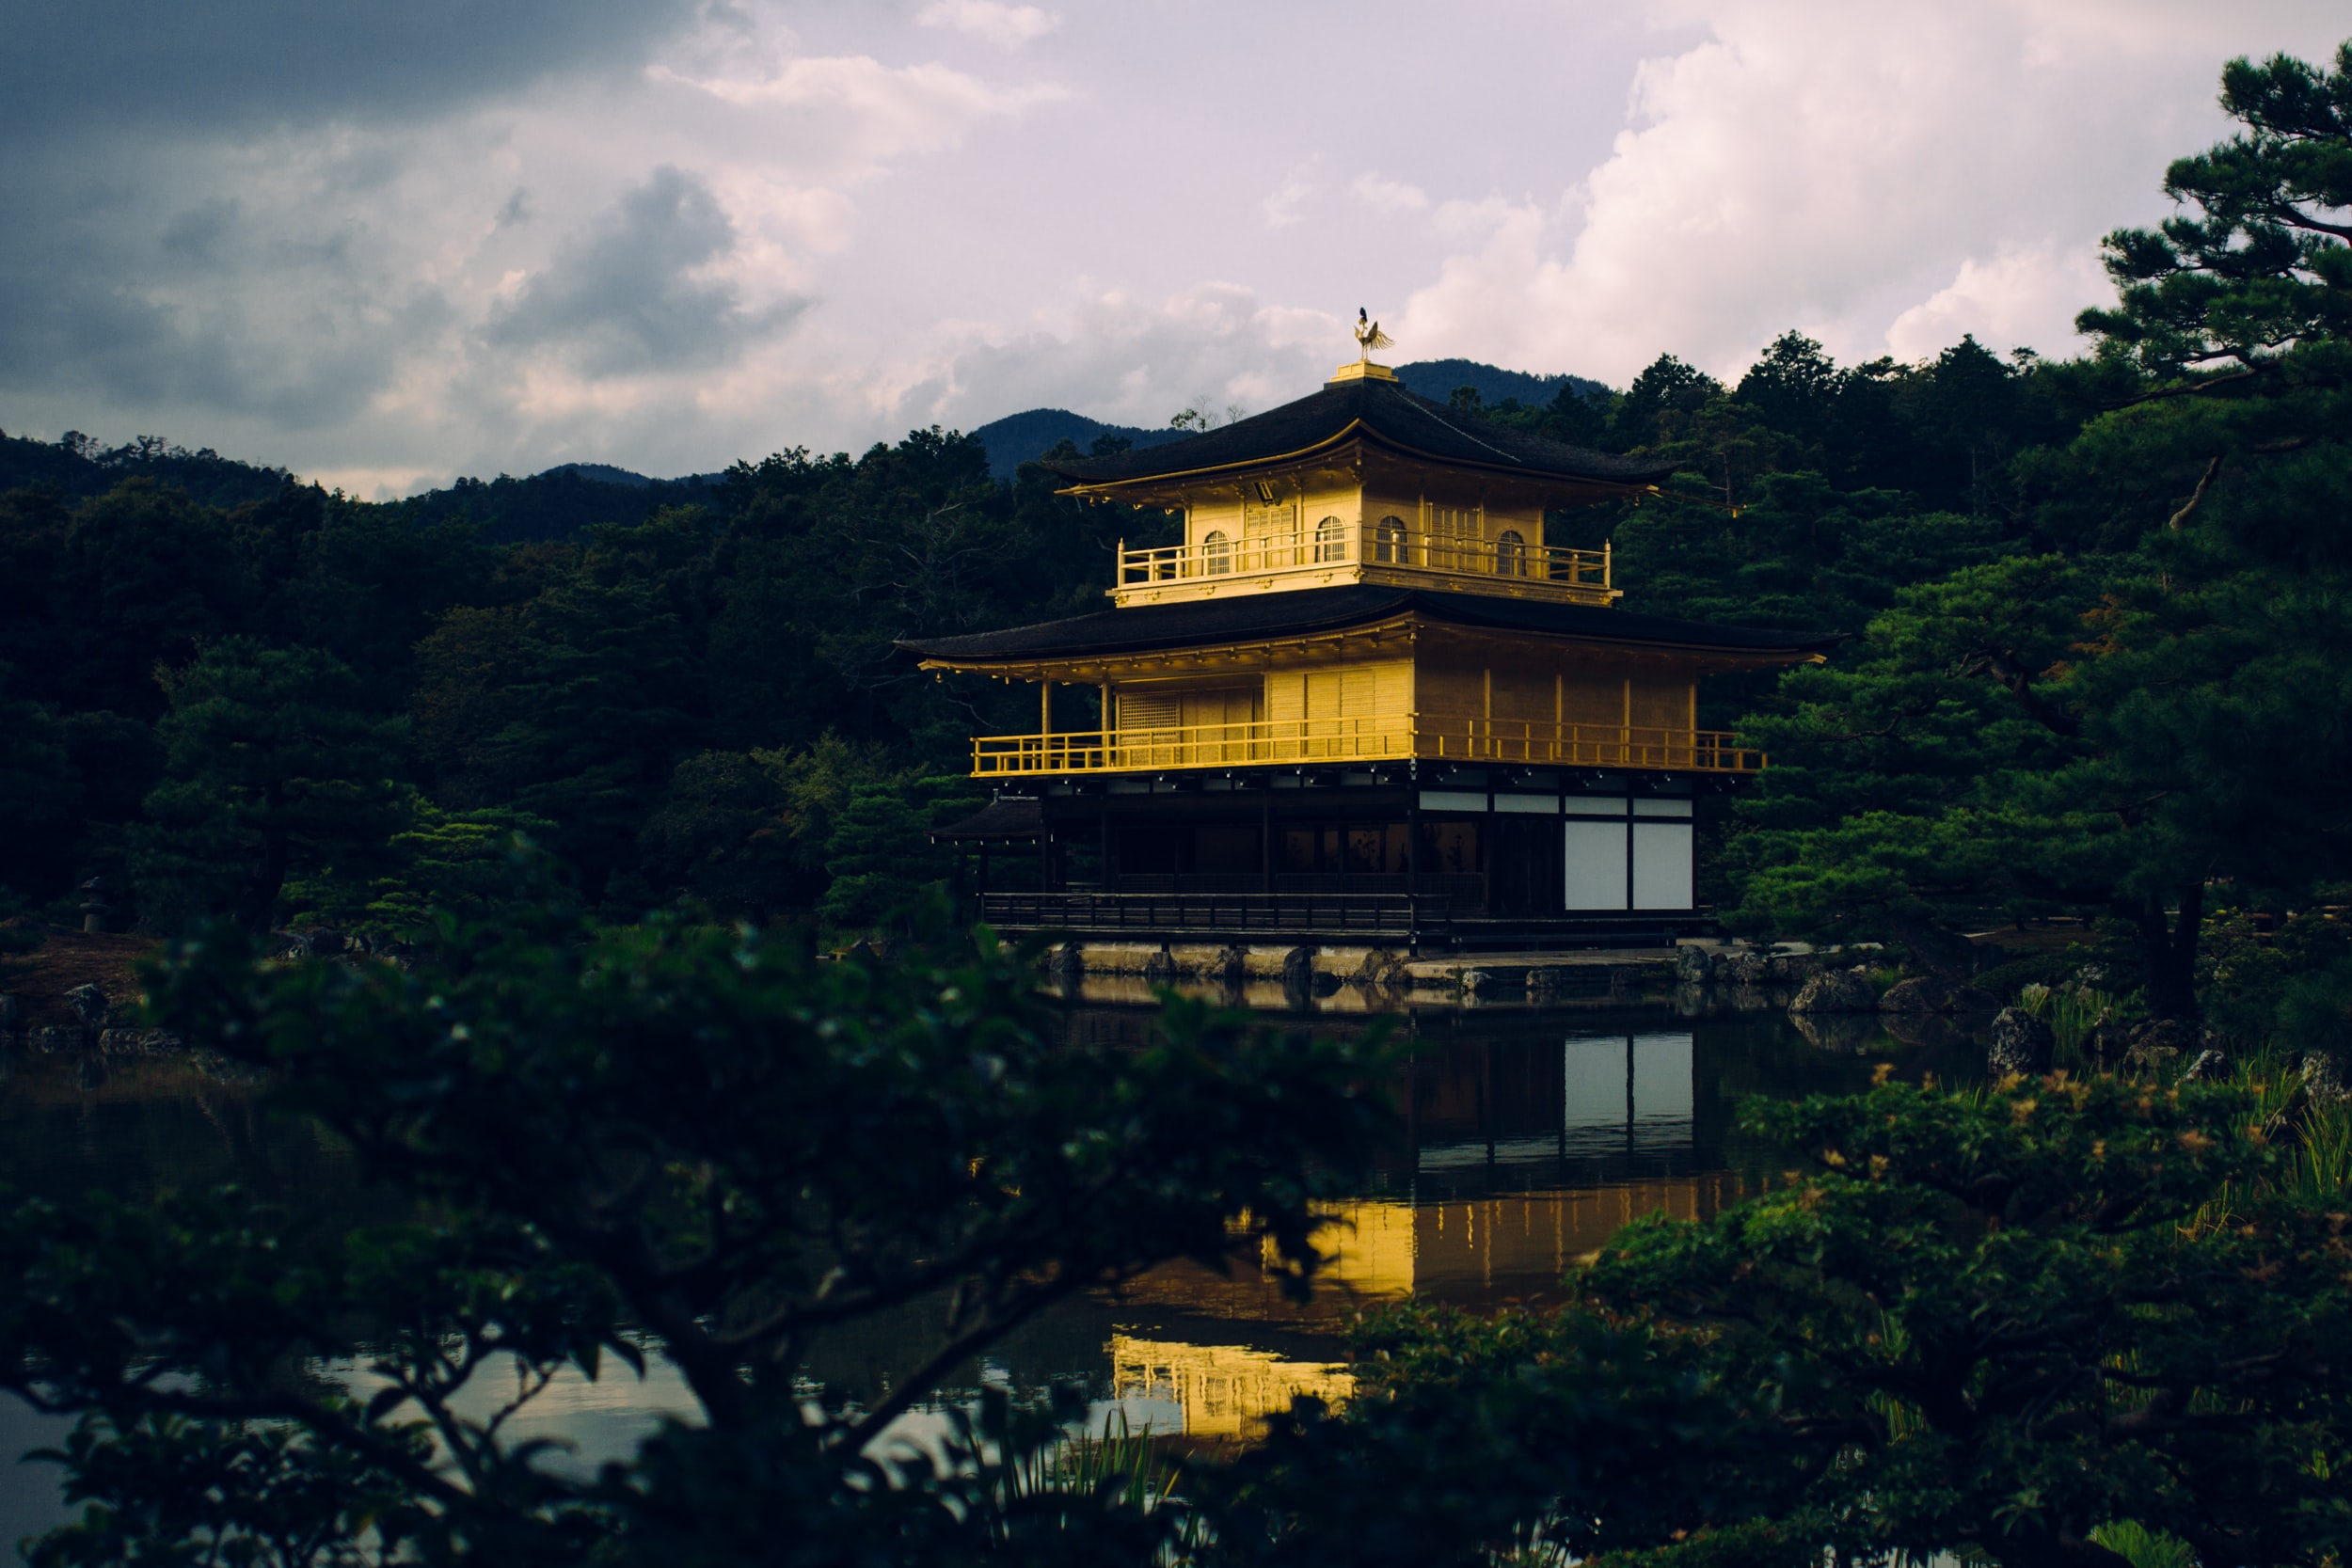 Golden temple next to pond in the middle of forest in Kinkaku-ji